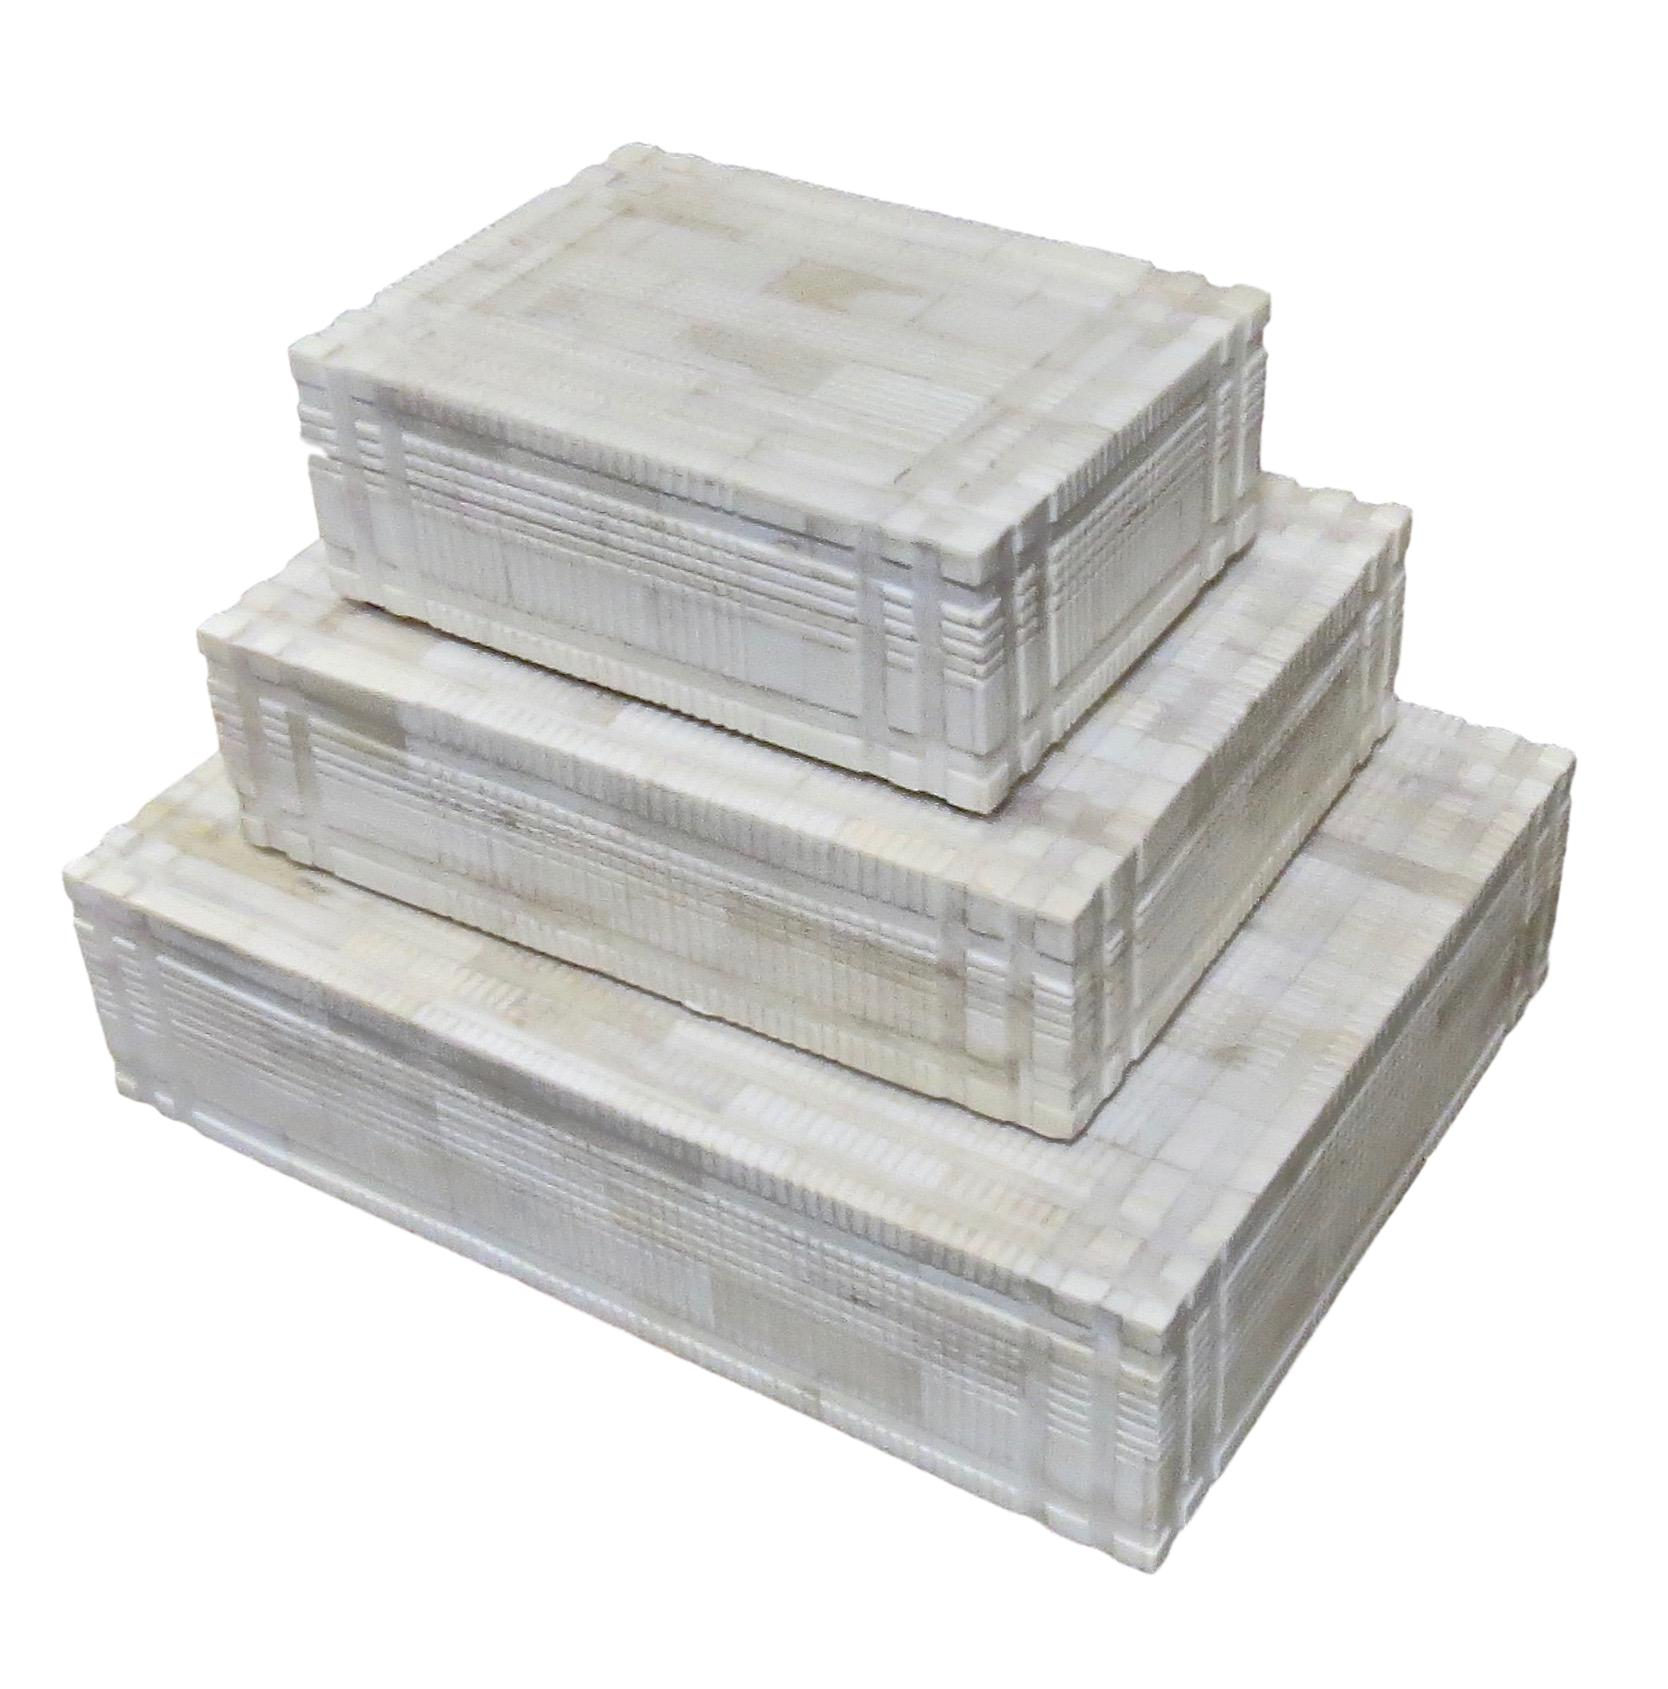 Carved Bone Box   Large   12x9x2.5h   BIU266L  Medium   9x7x2.5h   BIU266M  Small   7x5x2.5h   BIU266S